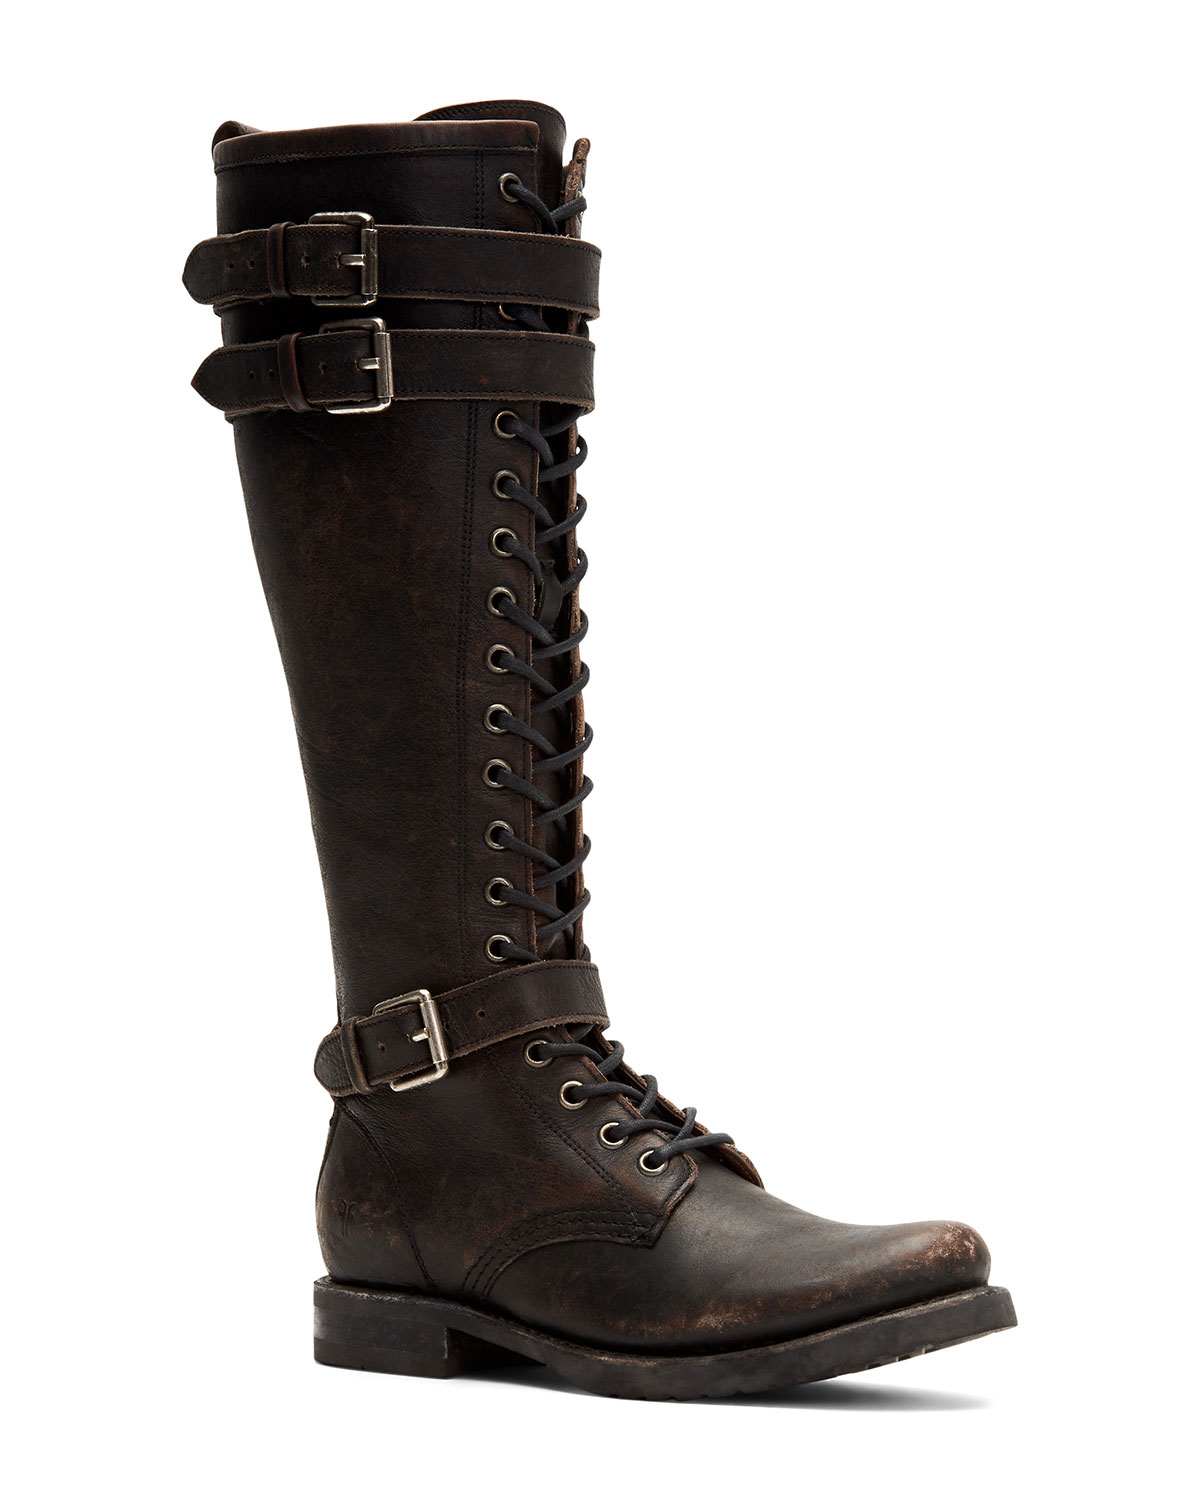 Veronica Rugged Leather Tall Moto Boots